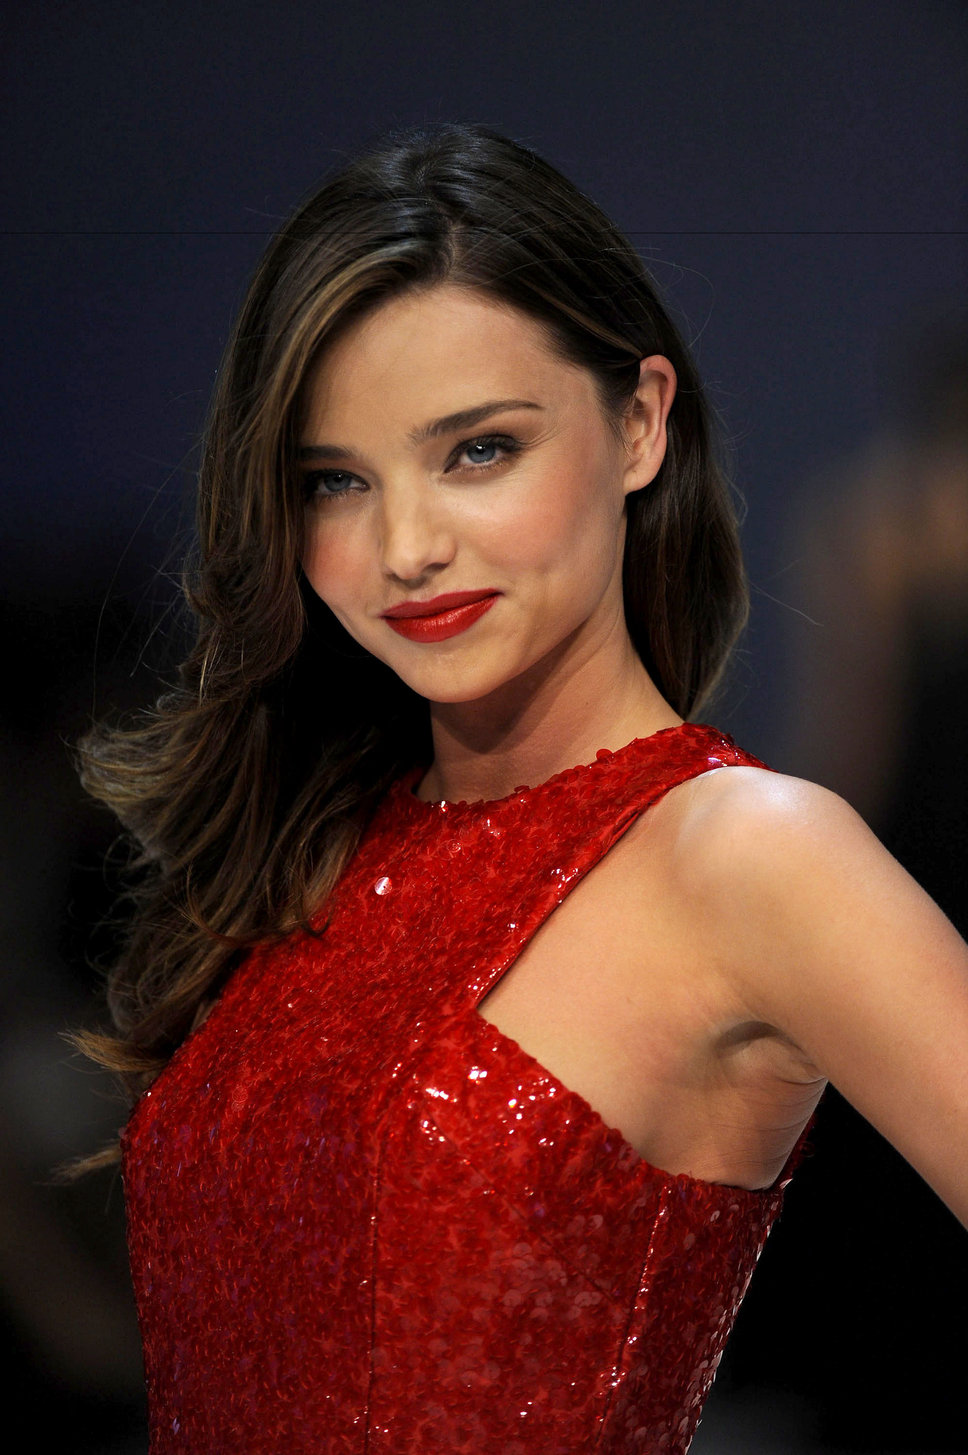 miranda-kerr-red-dress02.jpg